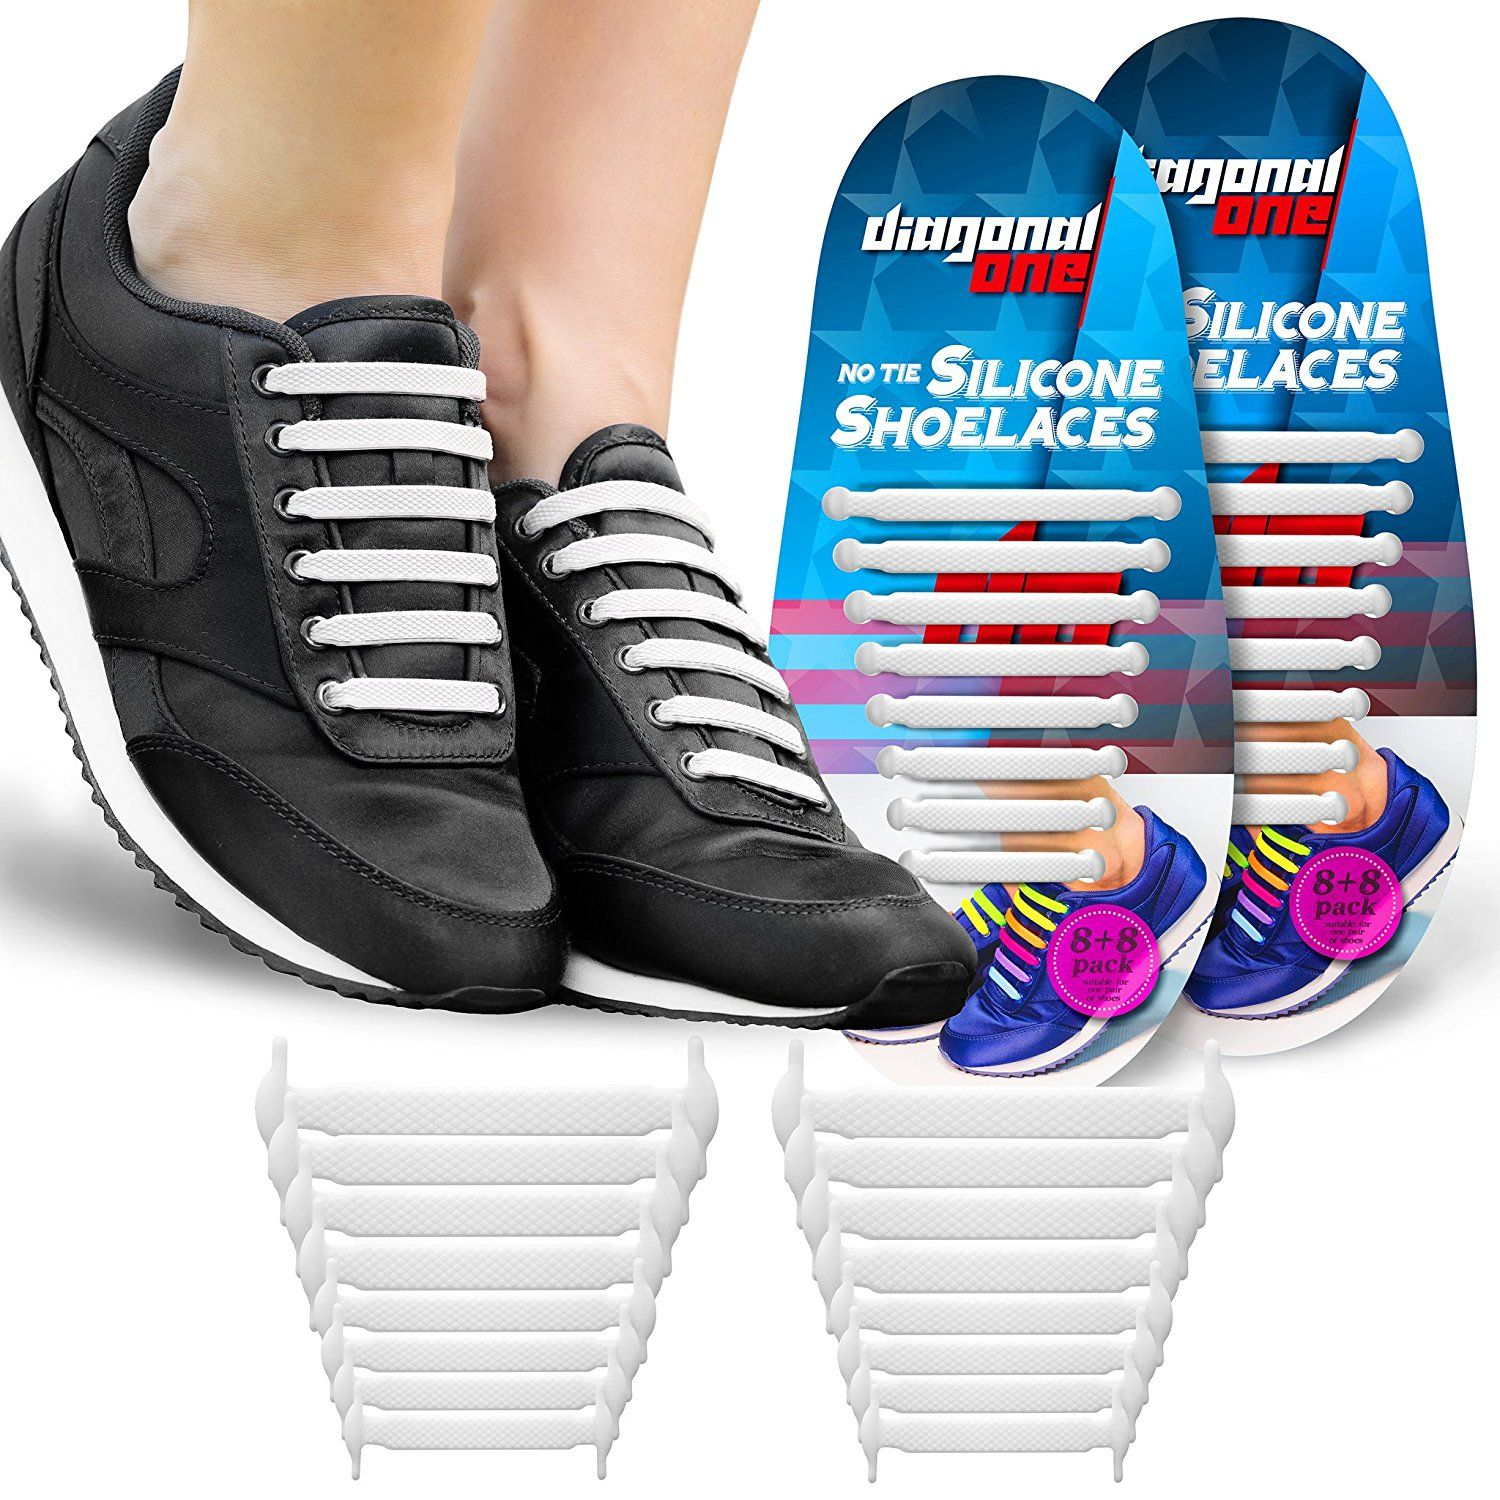 No Tie Shoelaces For Kids Amp Adults The Elastic Silicone